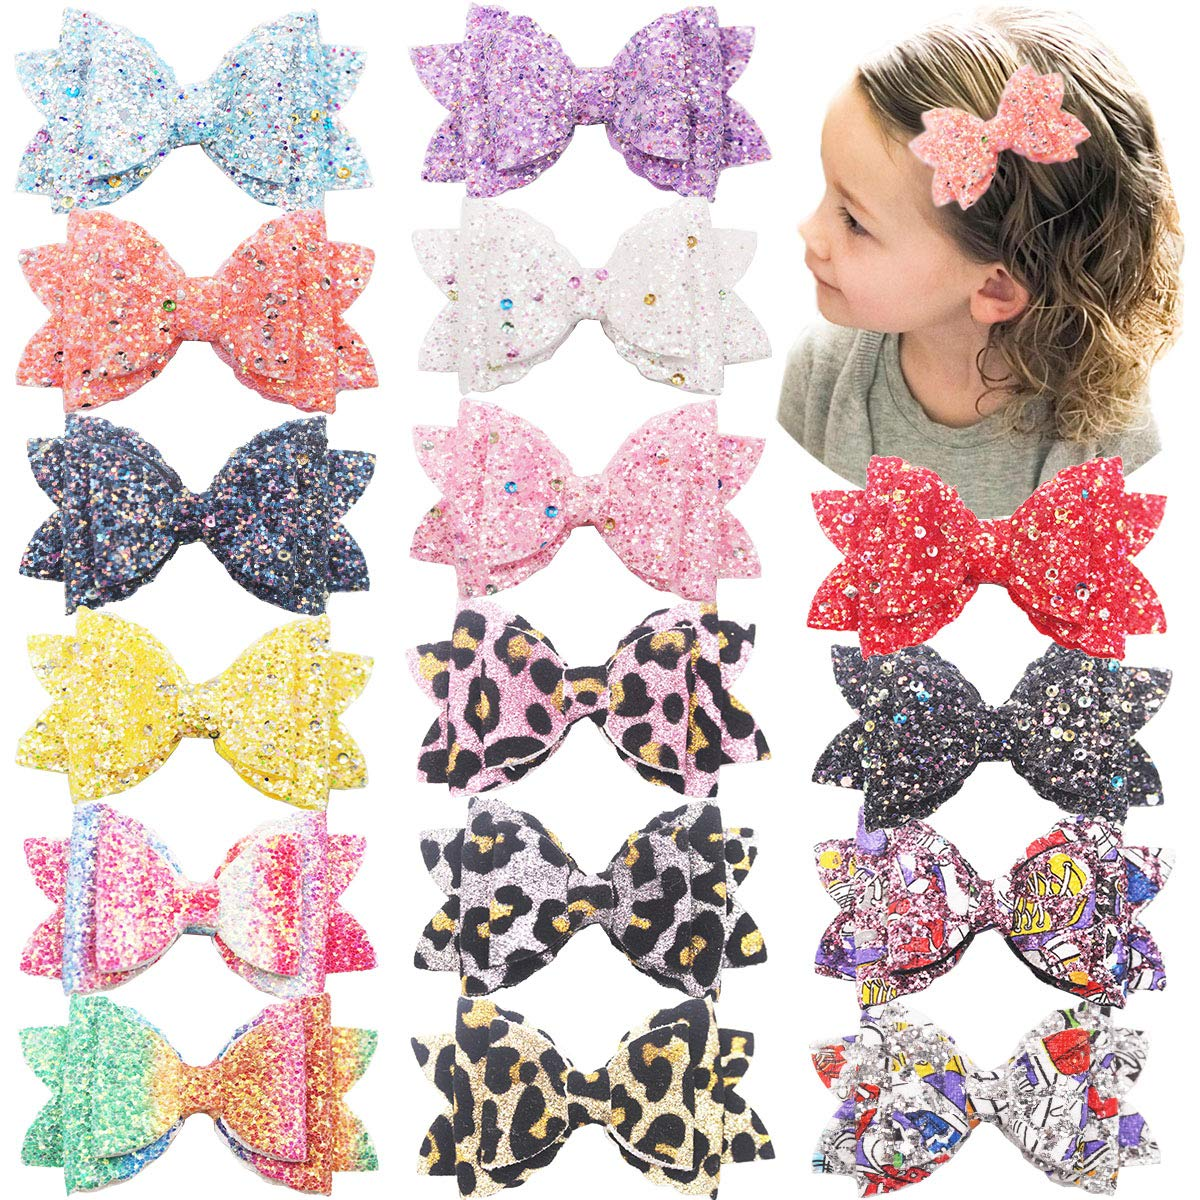 16PCS Glitter Hair Bows for Girls 3.5Inch Sparkly Sequin Glitter Bows Alligator Hair Clips Hair Accessories for Baby Girls Toddlers Kids Children